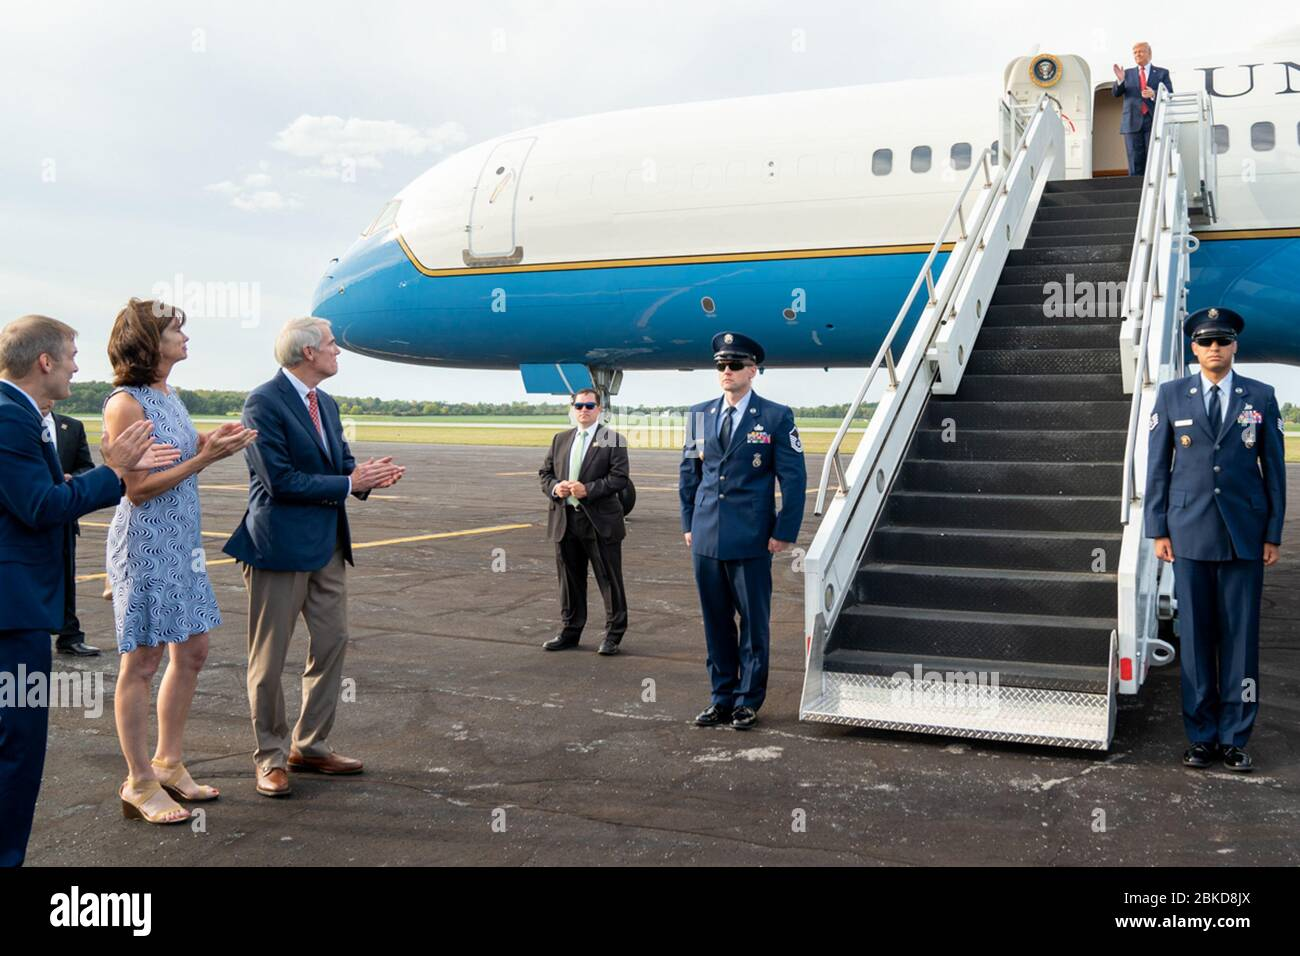 President Donald J Trump Is Welcomed By Senator Rob Portman R Ohio Jane Portman Representative Jim Jordan R Ohio And Polly Jordan On His Arrival Sunday Sept 22 2019 At Lima Allen Airport In Sur.ly for drupal sur.ly extension for both major drupal version is free of charge. alamy